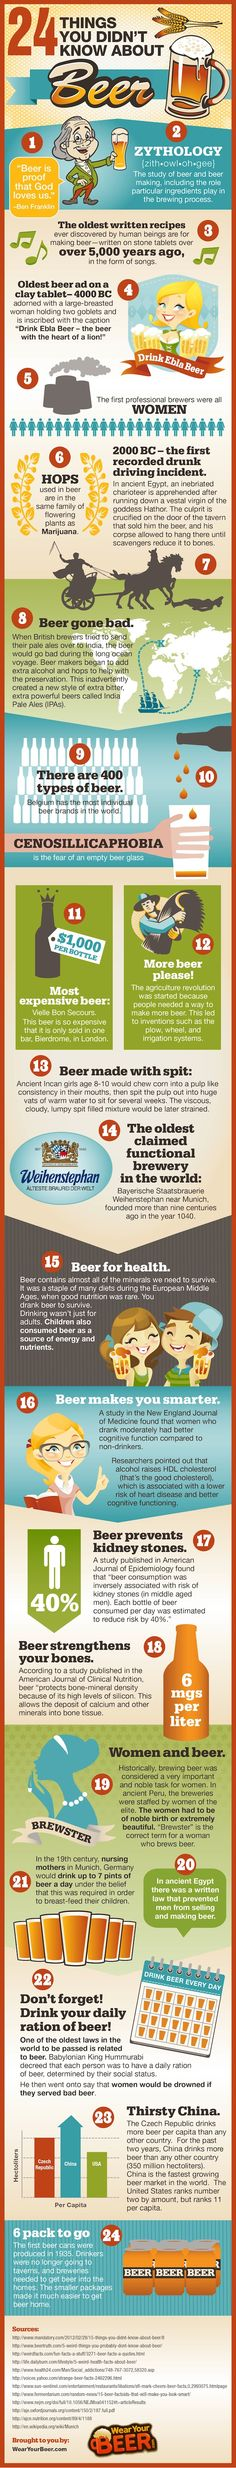 24 Facts You Didn't Know About Beer | Gizmodo Australia